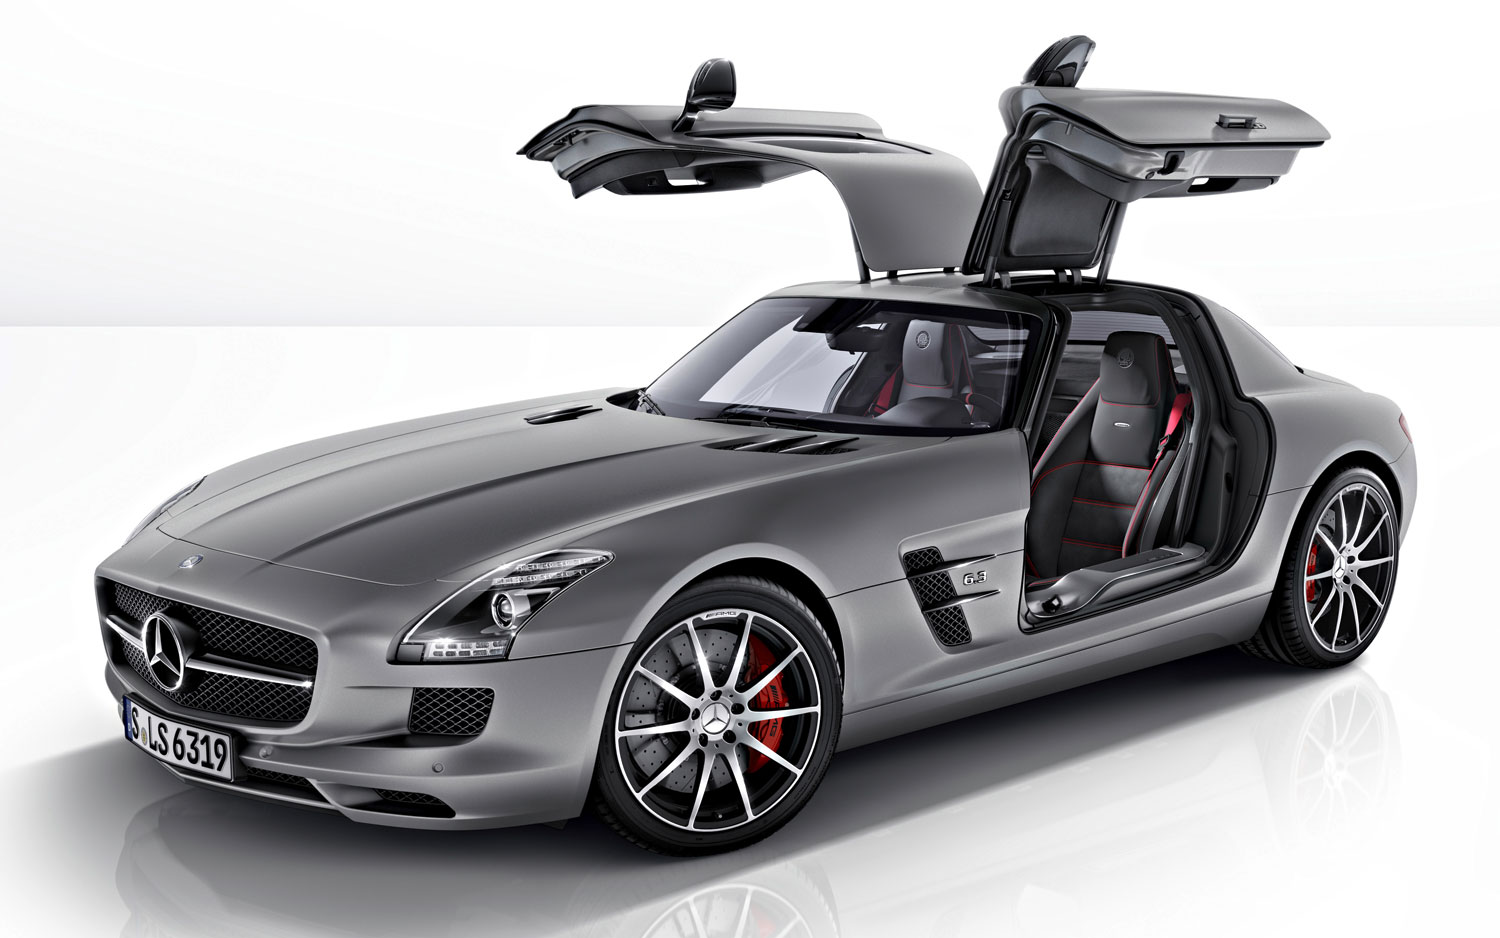 2013 Mercedes Benz SLS AMG GT Coupe Front Three Quarters View1